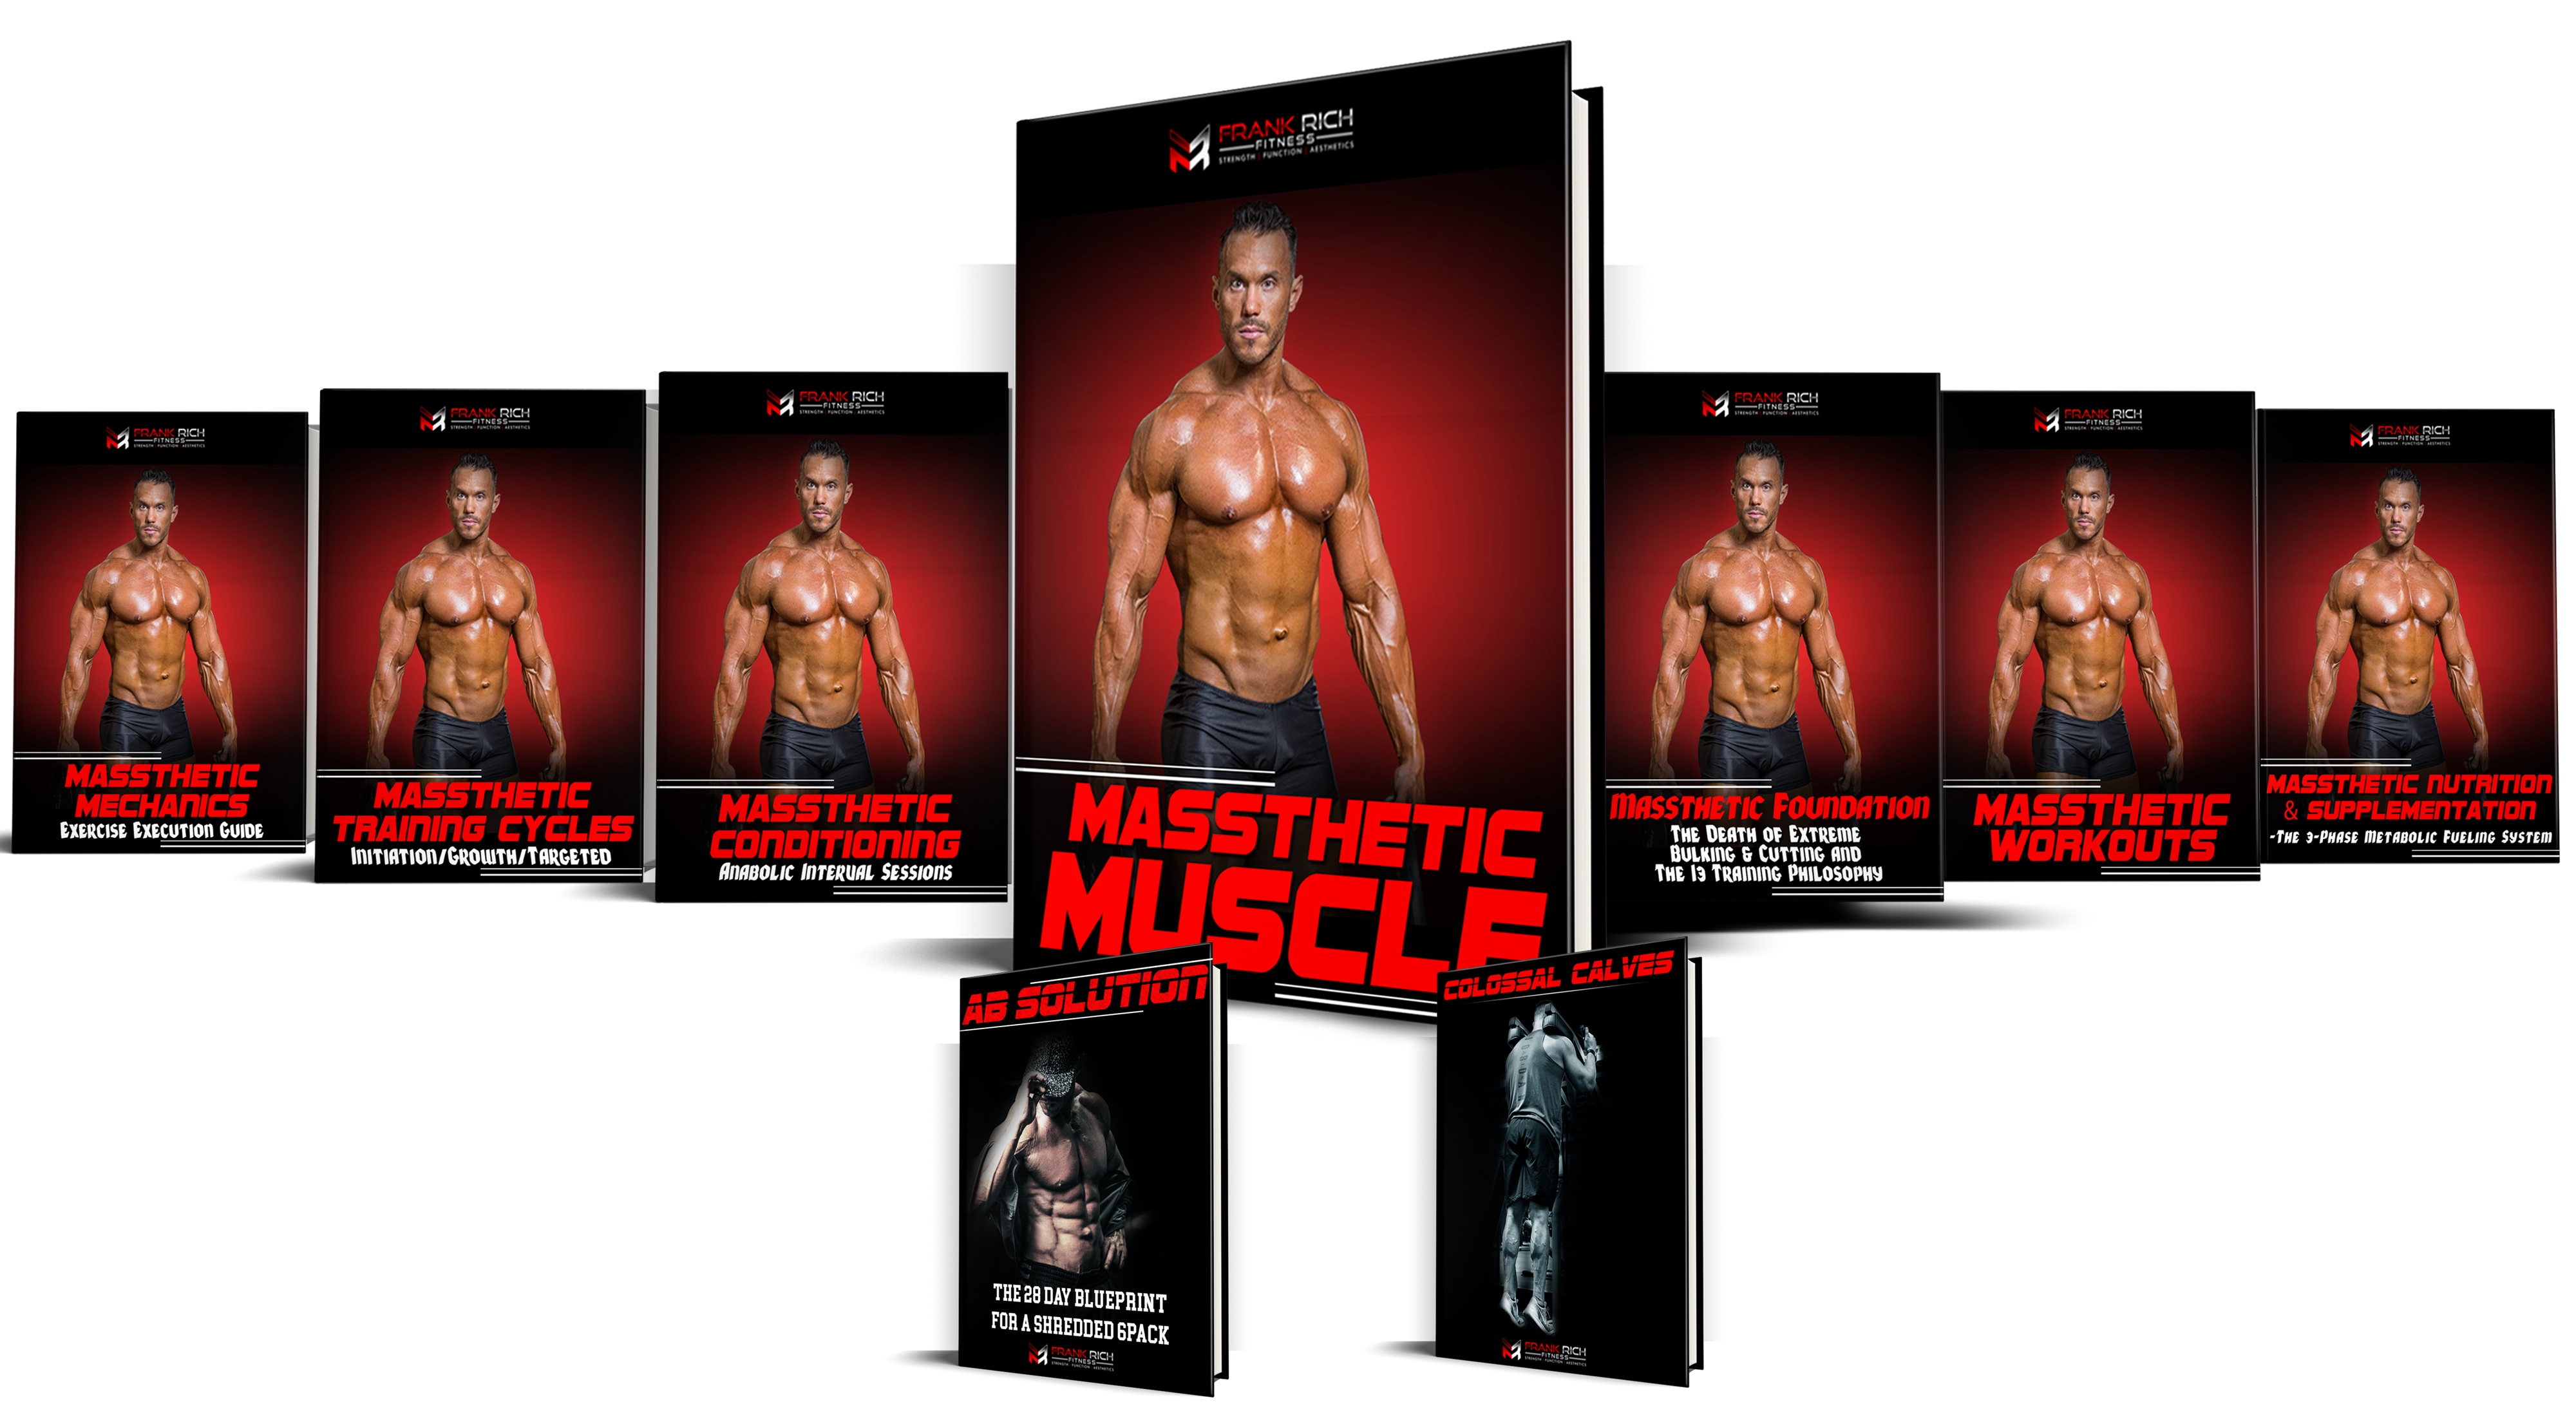 Massthetic muscle massthetic muscle the complete guide to the art of sculpting lean muscle mass that is aesthetically pleasing fandeluxe Image collections